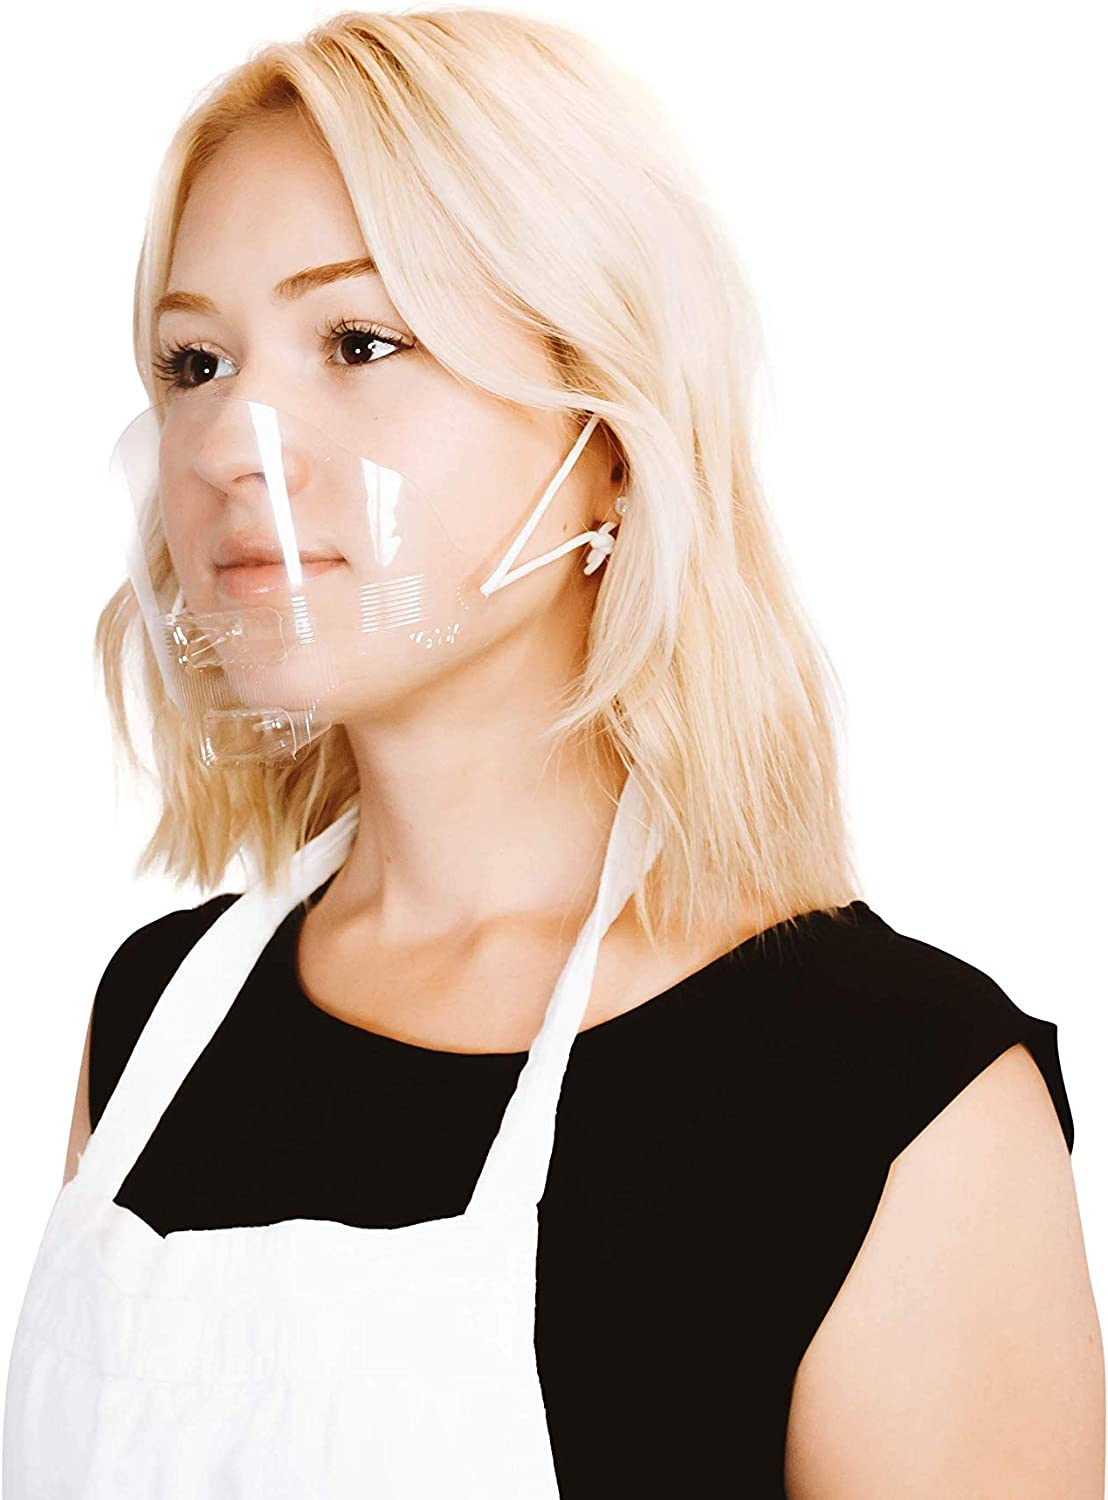 (30 Masks) Ultralight Mask Transparent Hygienic Open Face Shield for Foodservice - Hospitality - Retail I Anti-Fog I Clear Open Mouth Design with Chin Rests I Rinse & Reuse I Fully Disposable